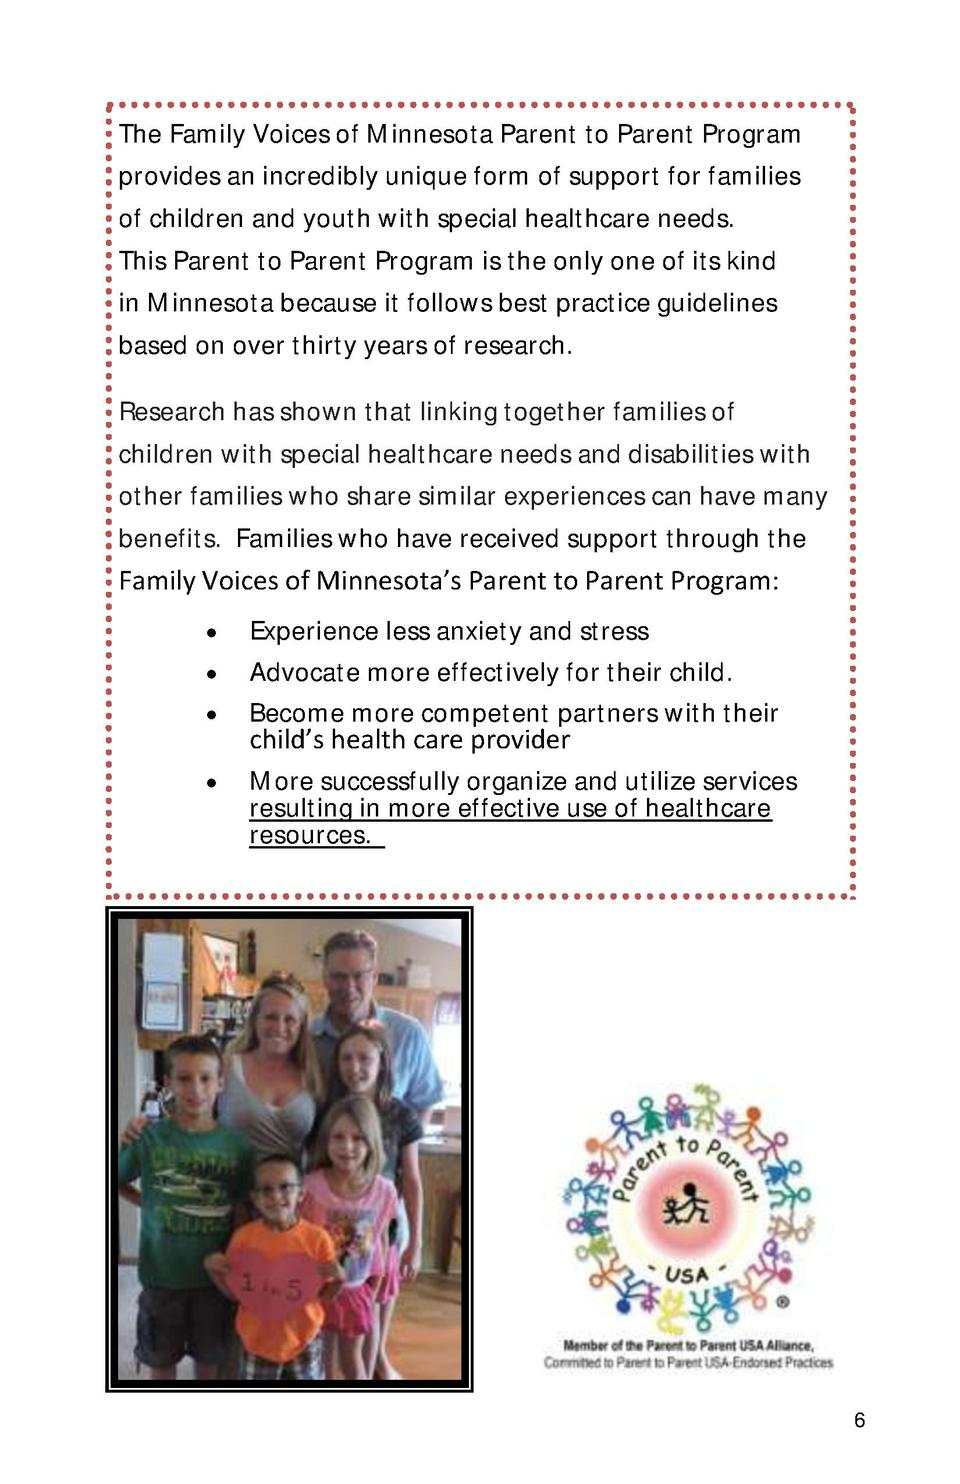 The Family Voices of Minnesota Parent to Parent Program provides an incredibly unique form of support for families of chil...